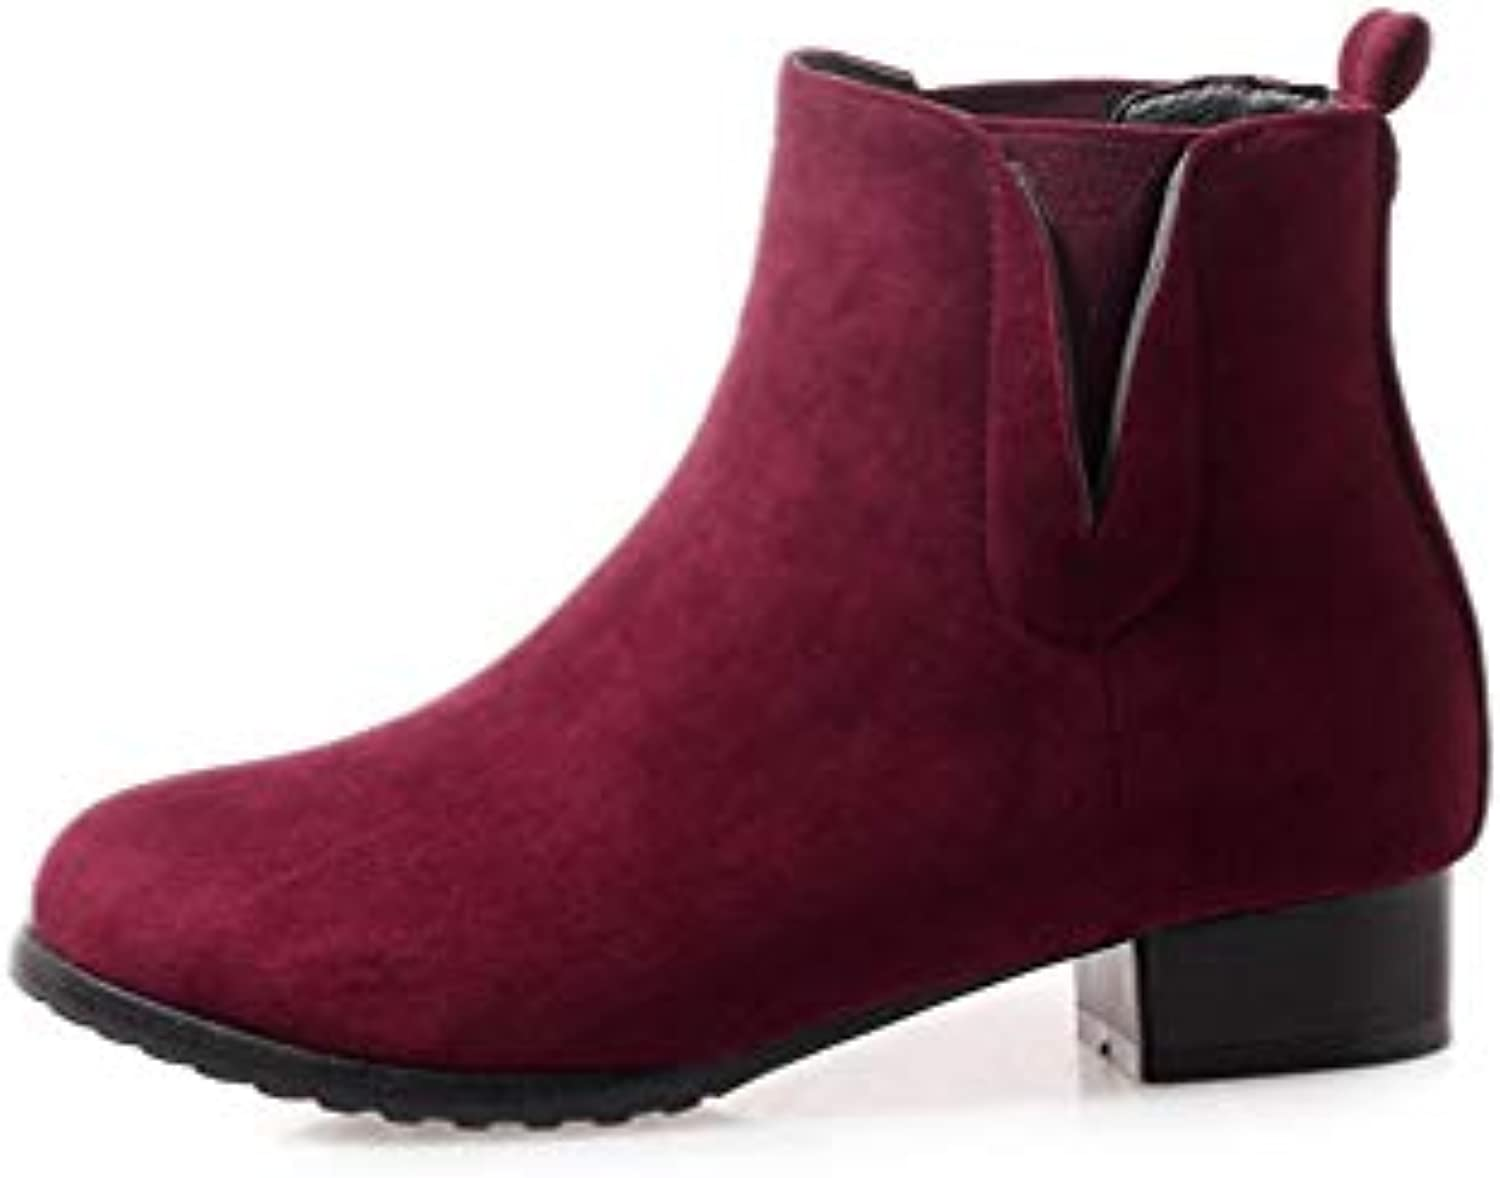 T-JULY Women Flock Top Qulity Autumn Winter Boots Fashion Round Toe Square Heels shoes Woman Big Size Ankle Boots